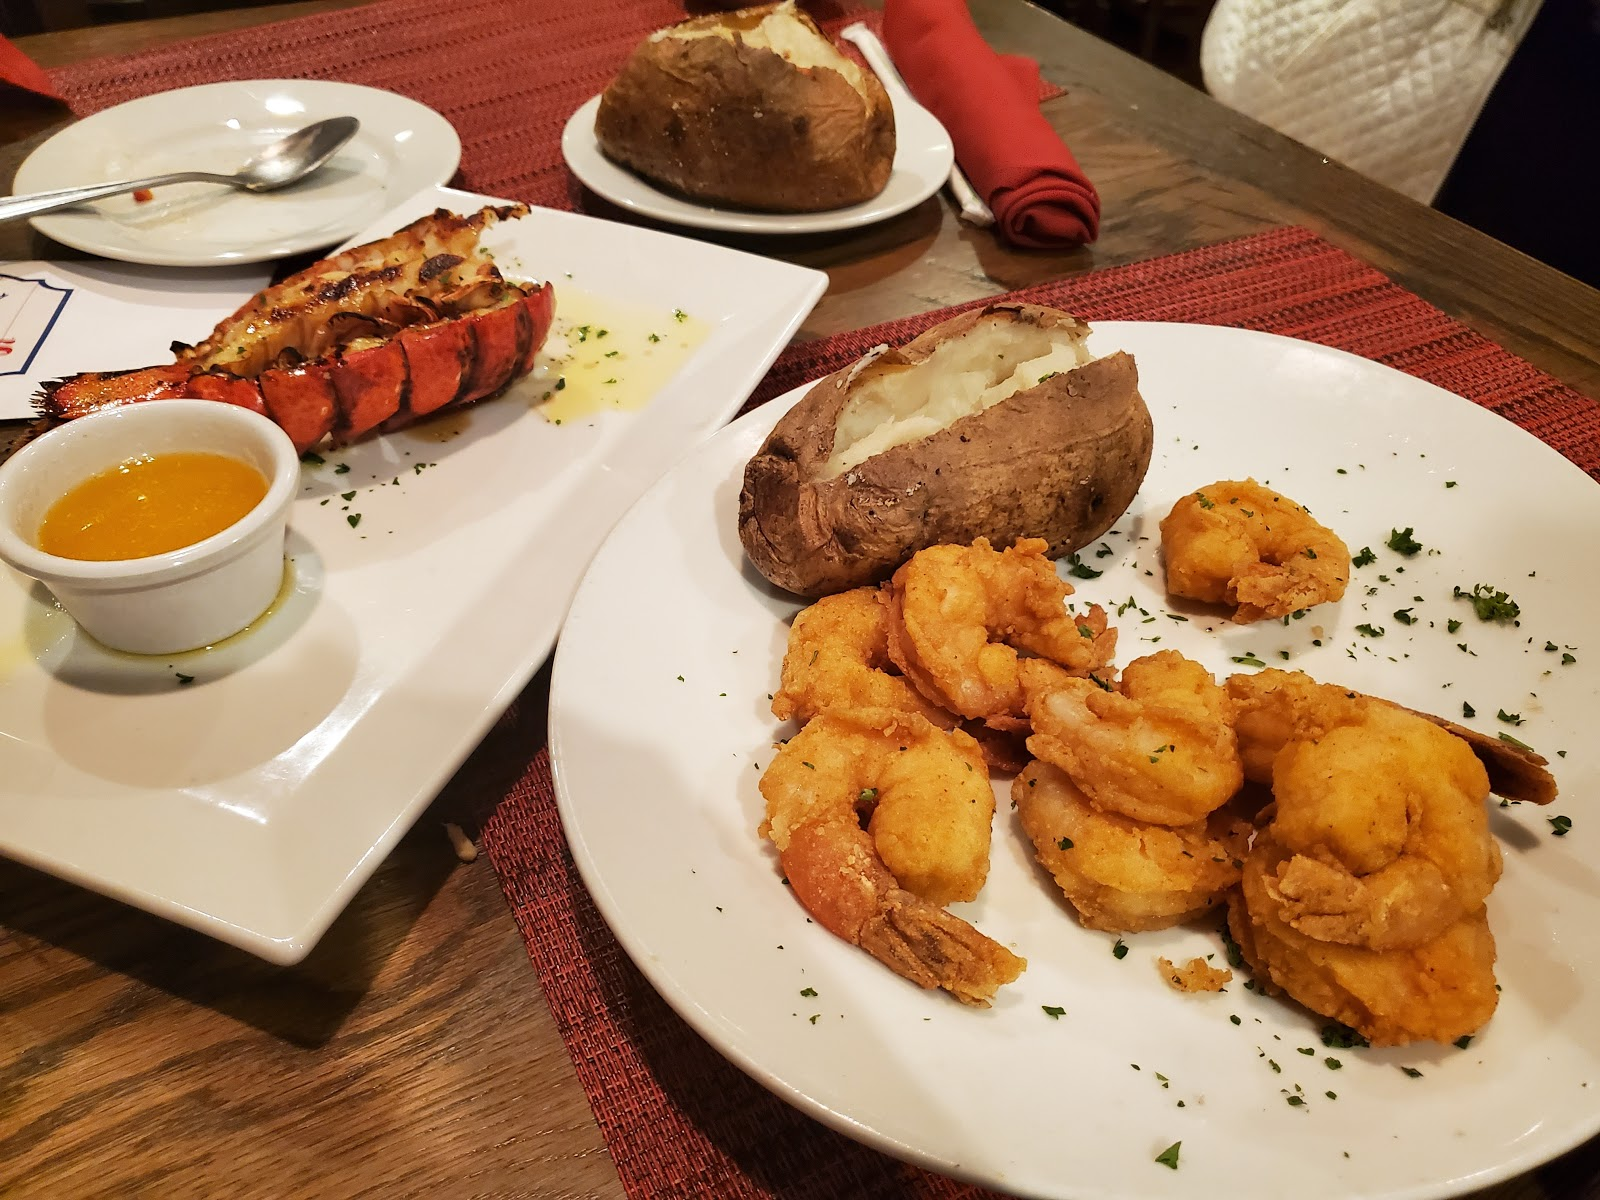 Shrimp, lobster tail, and baked potato